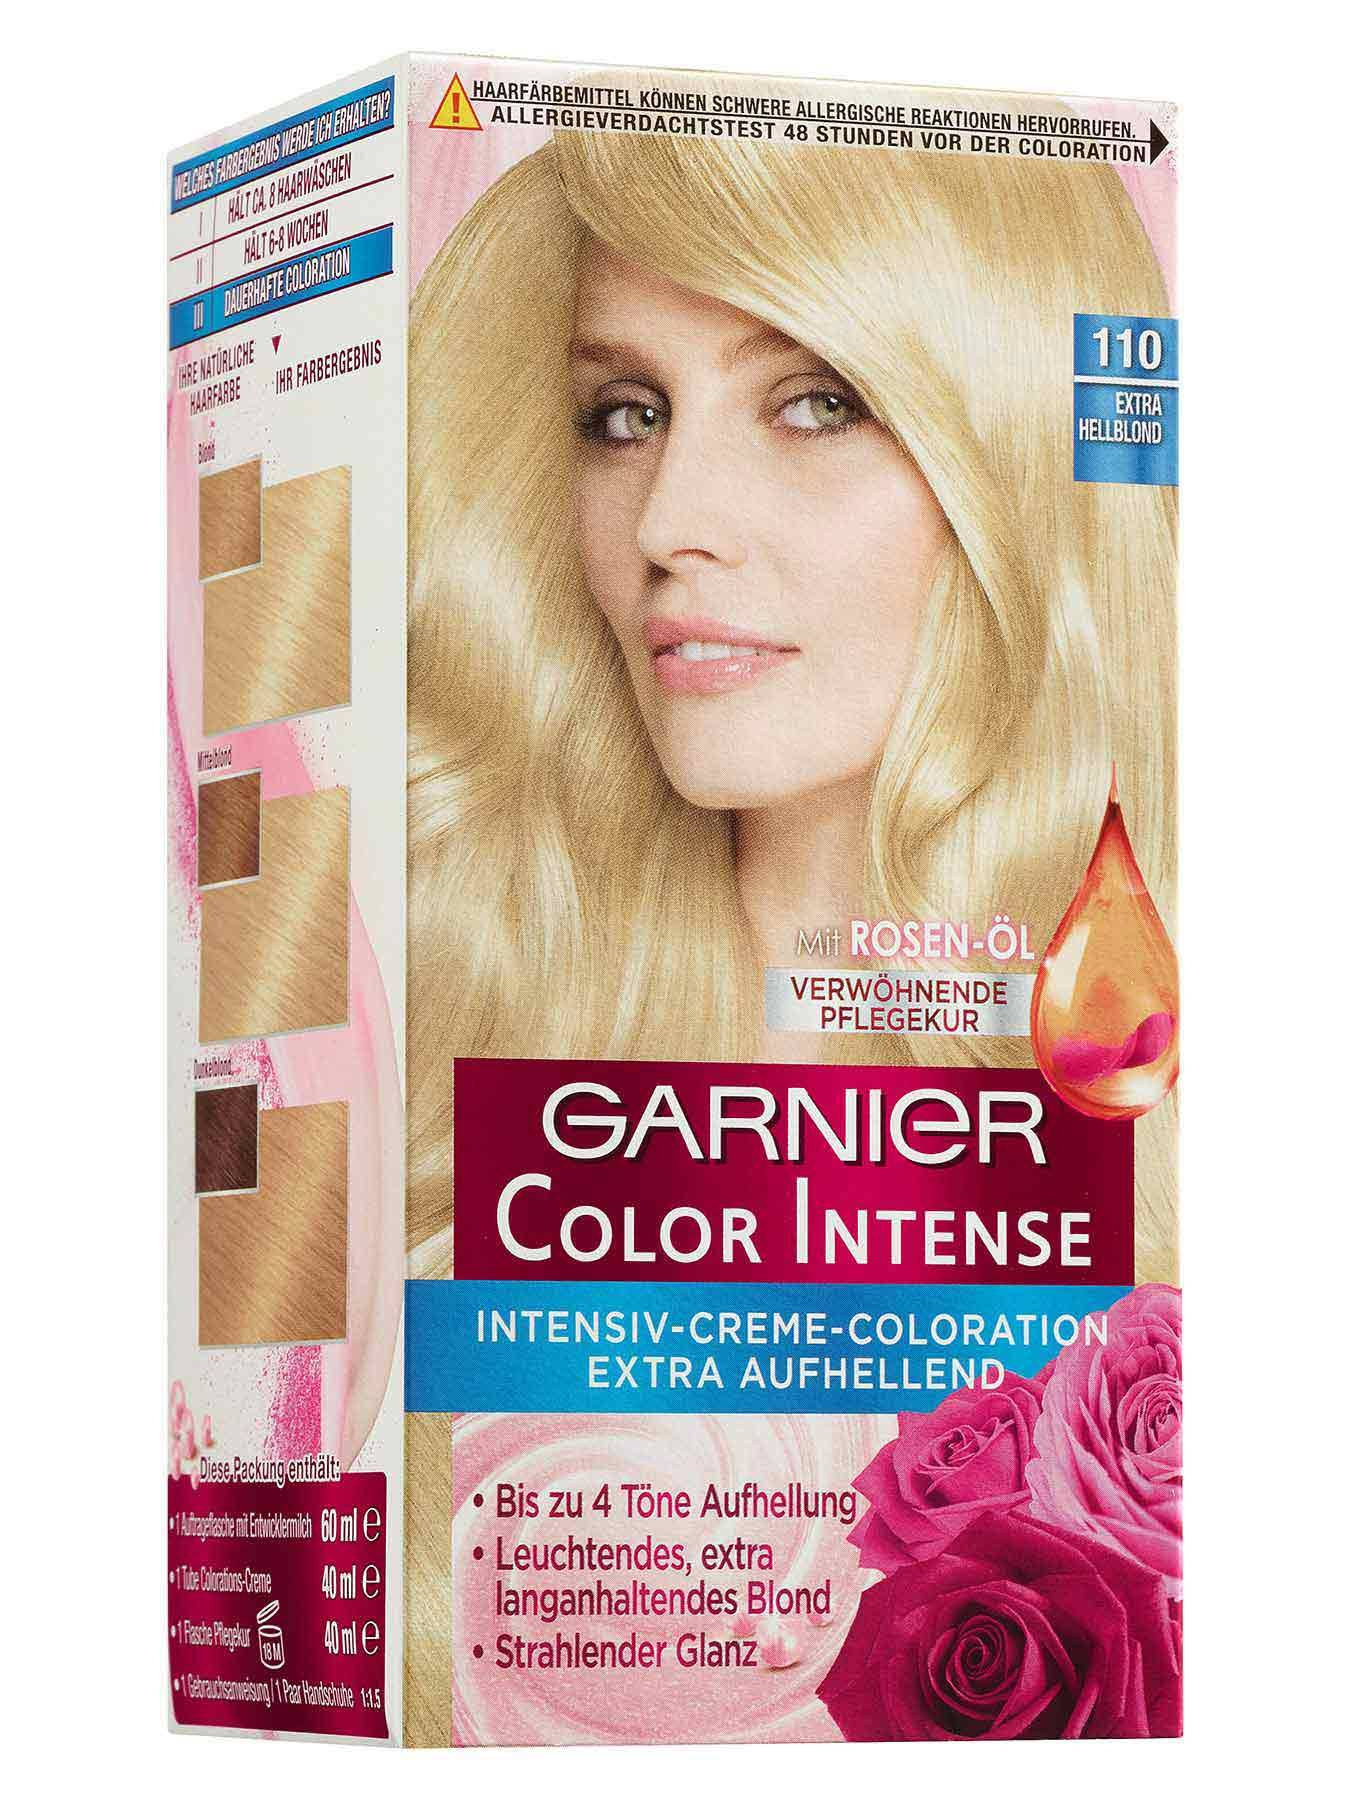 110-Extra-Hellblond-Intensiv-Creme-Coloration-Color-Intense-1Stk-Vorderseite-Garnier-Deutschland-gr